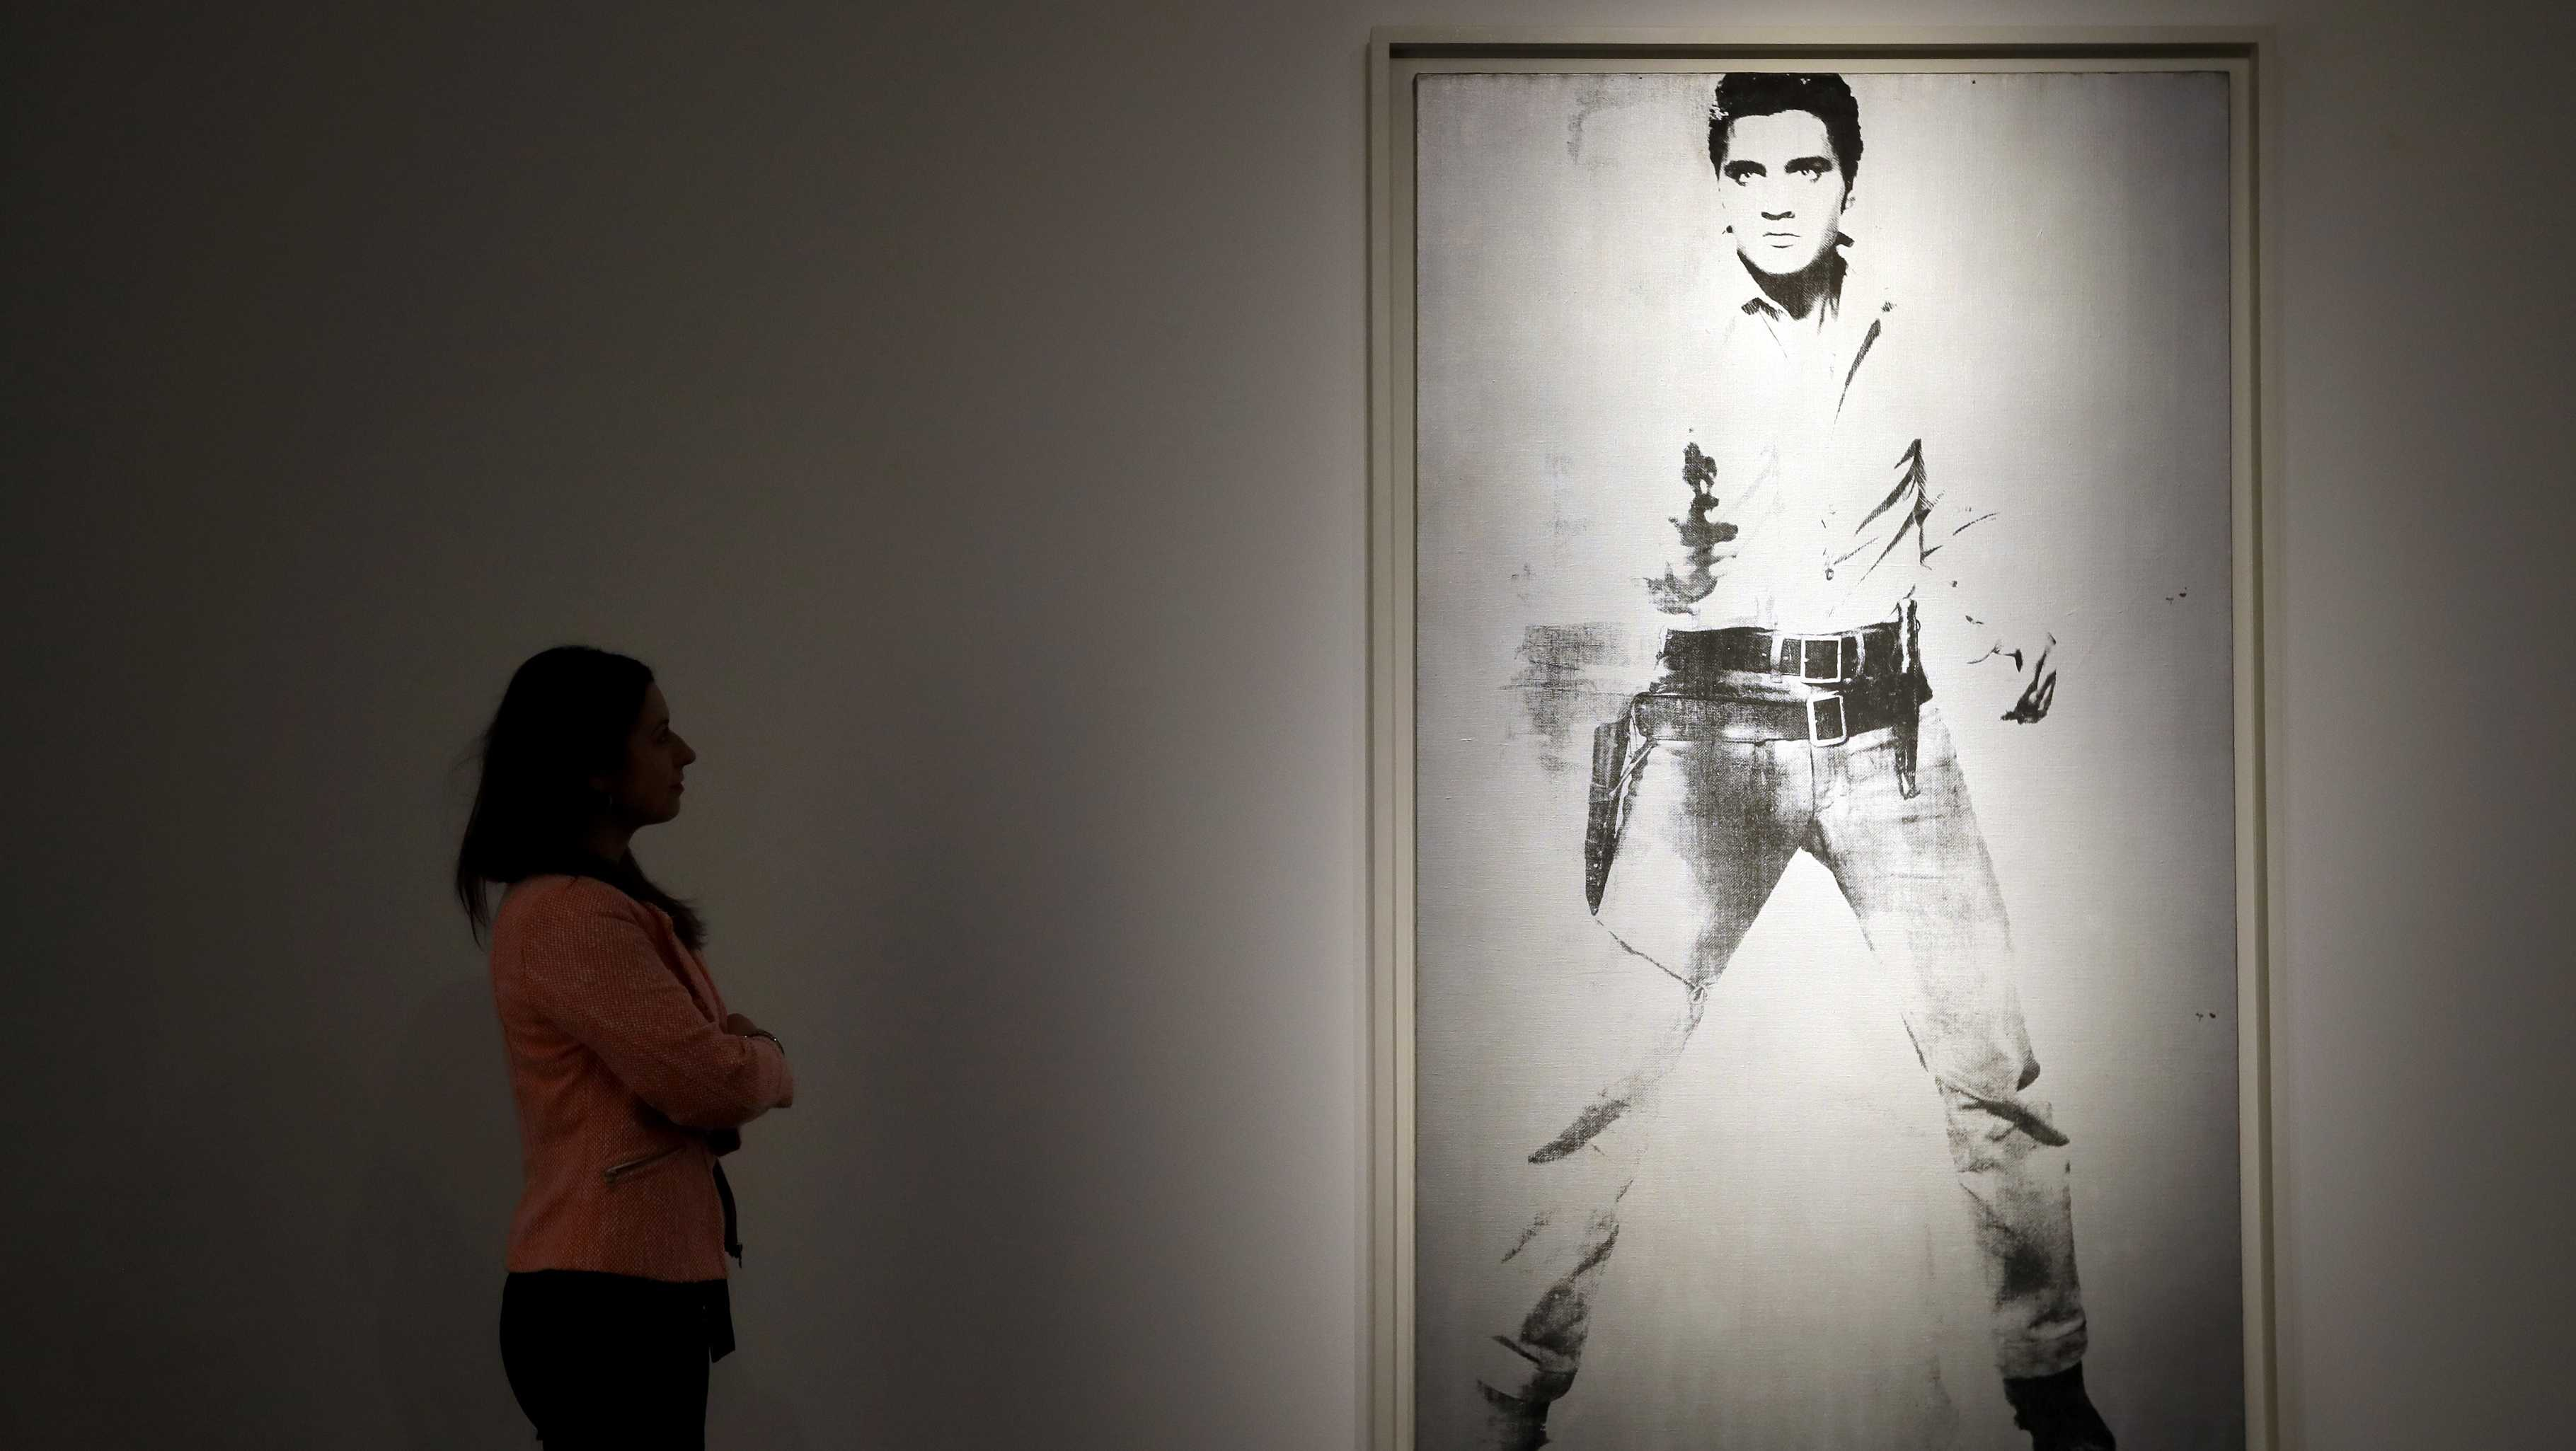 A painting by Andy Warhol called 'Double Elvis [Ferus Type]' (1963) is displayed at Christie's auction rooms in London, Thursday, April 5, 2018. The painting will be offered in the Post-War and Contemporary Art Evening Auction in New York on May 17, and carries a price tag around $30 million.